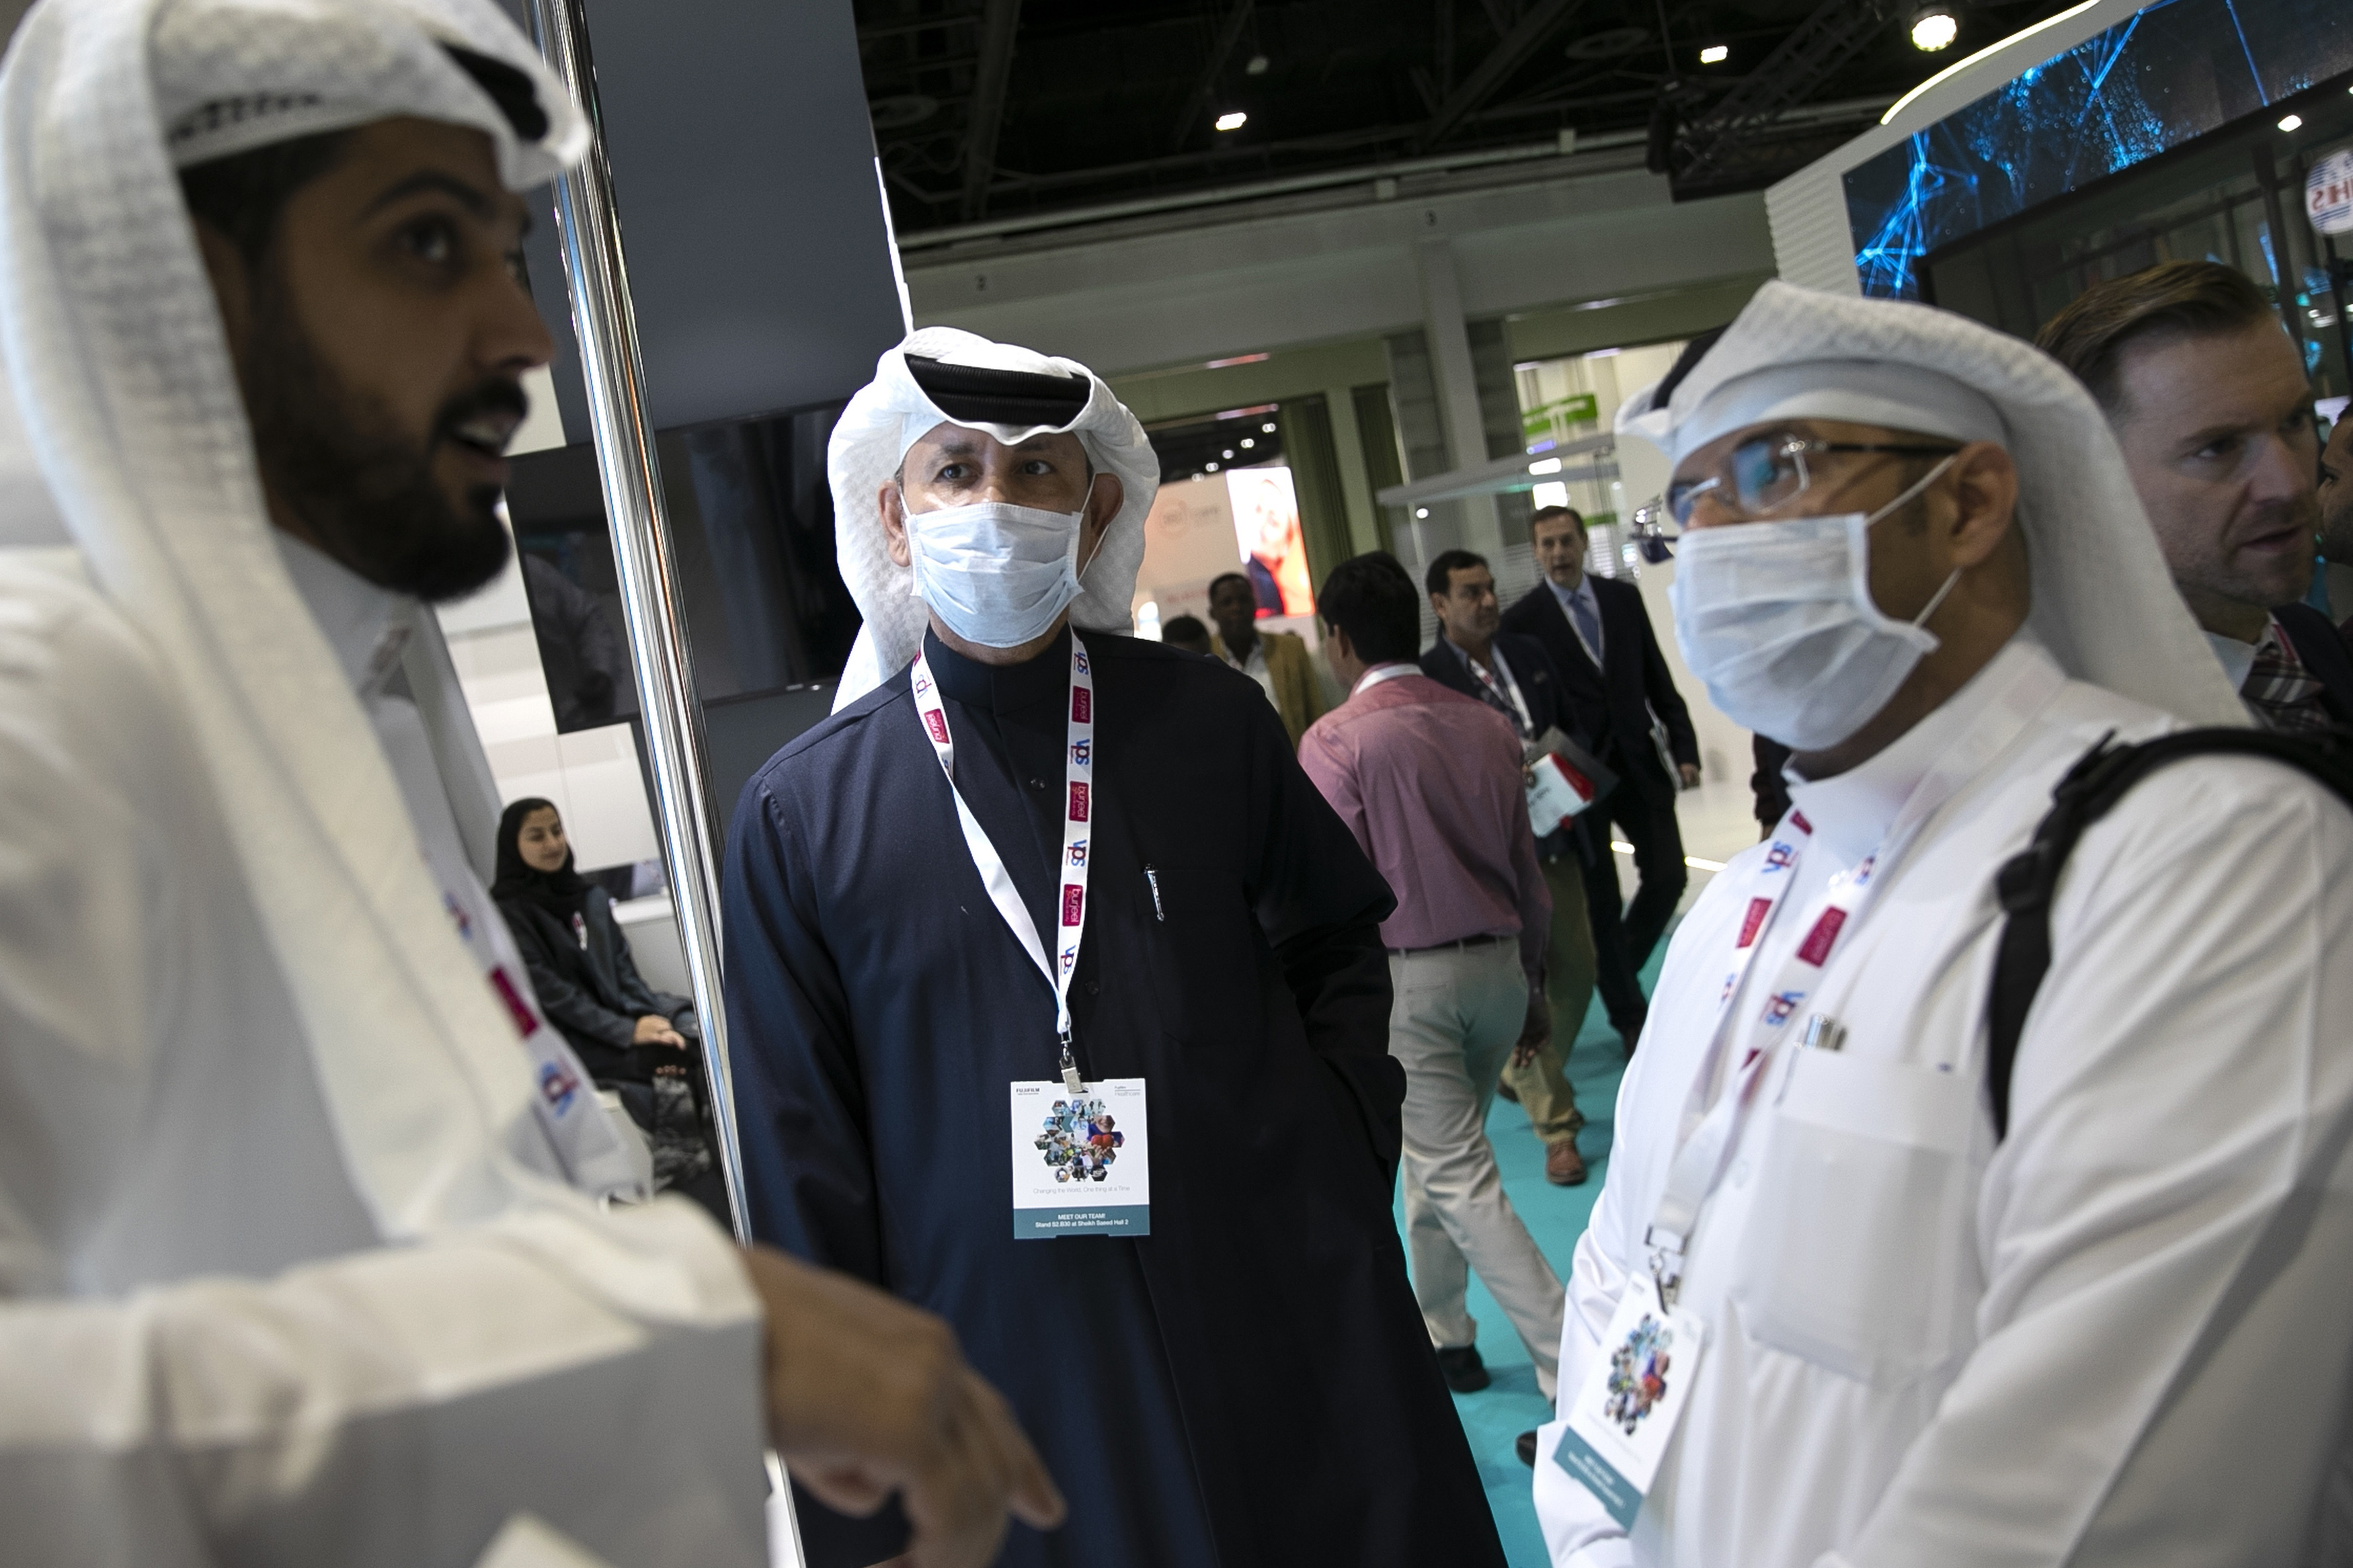 UAE confirms 4 Chinese tourists have virus, first in Mideast